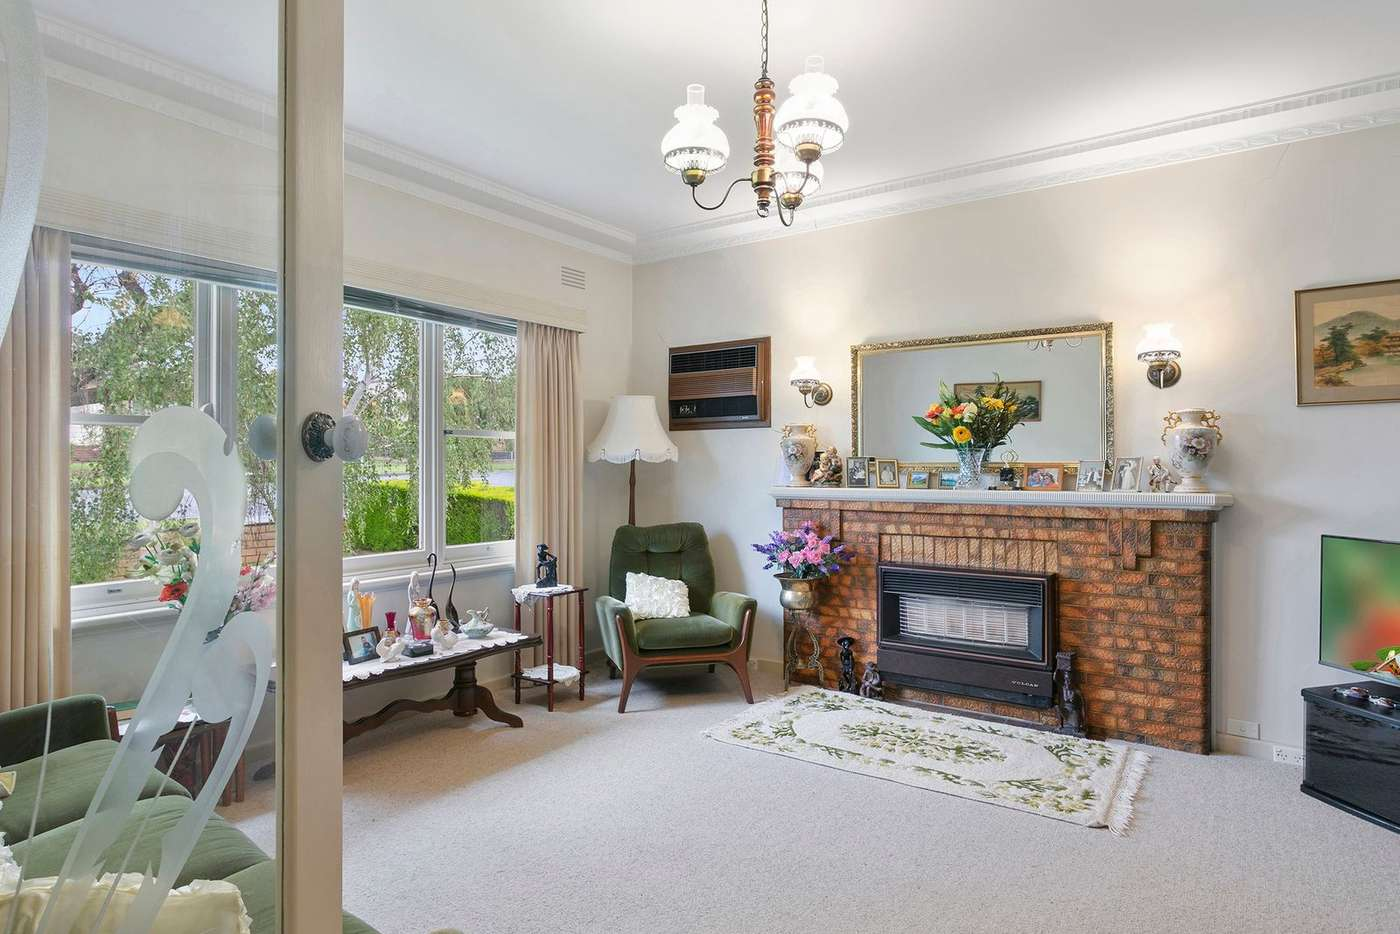 Fifth view of Homely house listing, 26 Dowding Street, California Gully VIC 3556